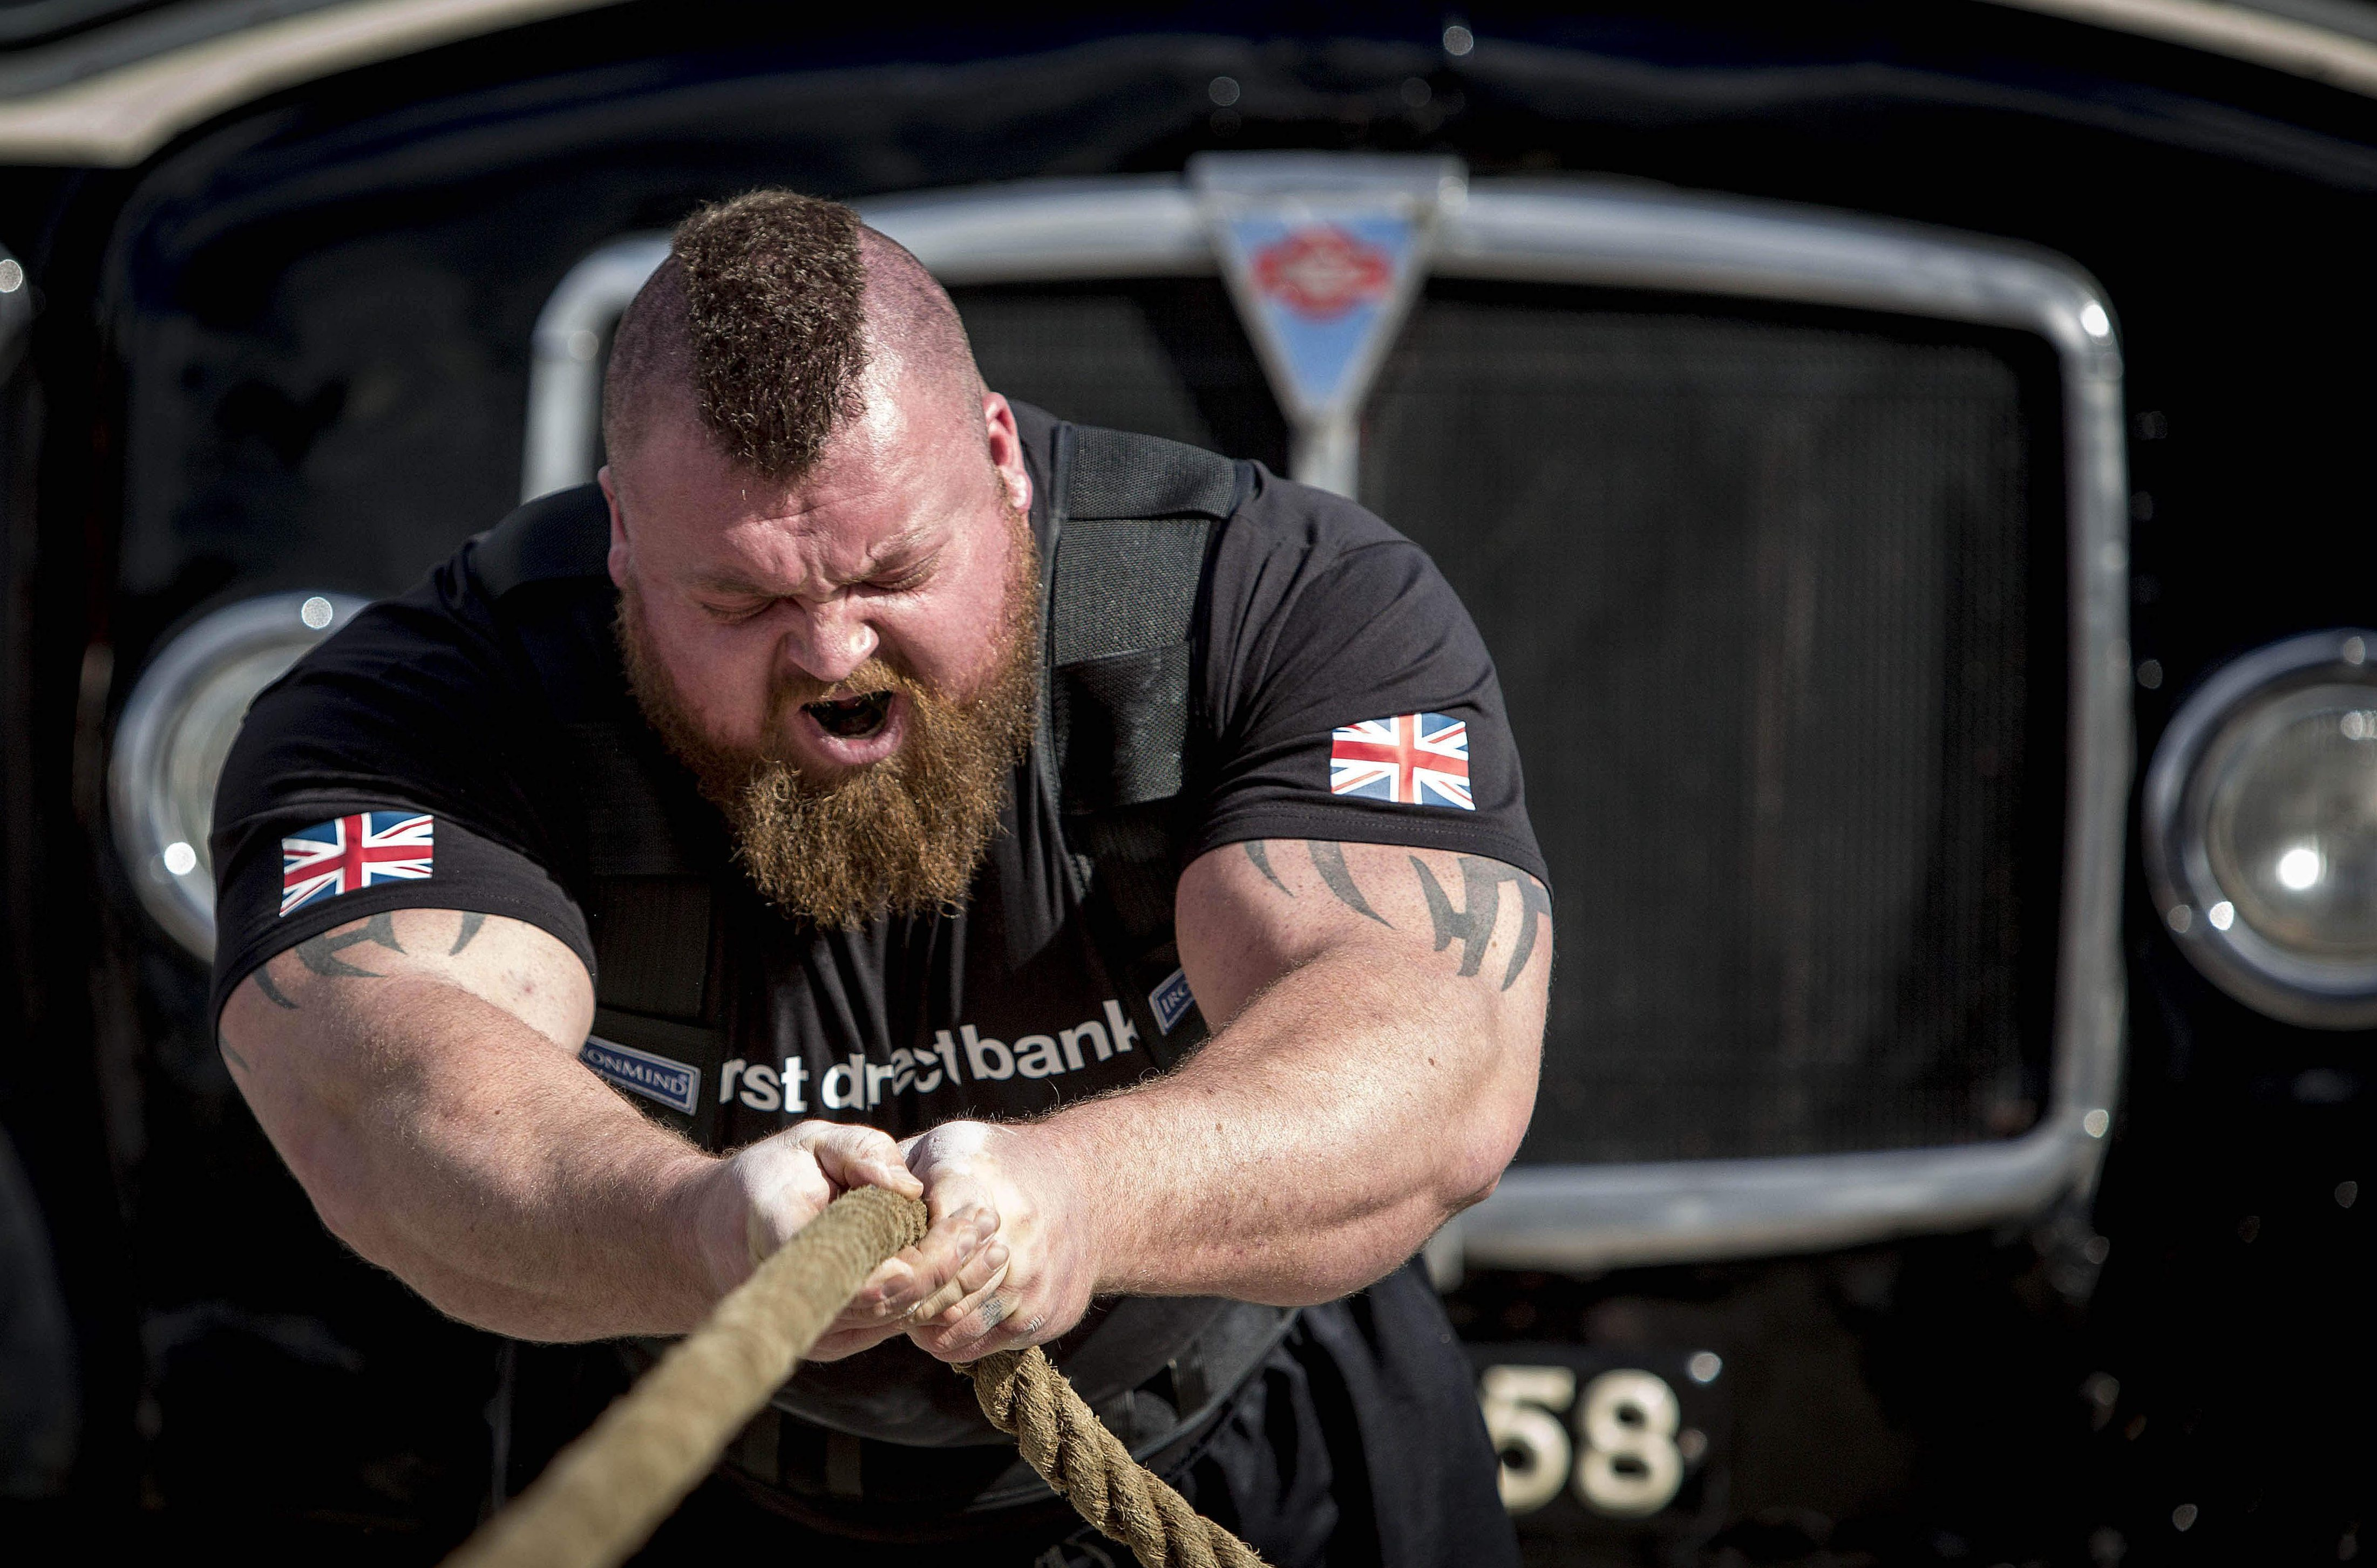 Eddie Hall is the only person to ever deadlift 500kg